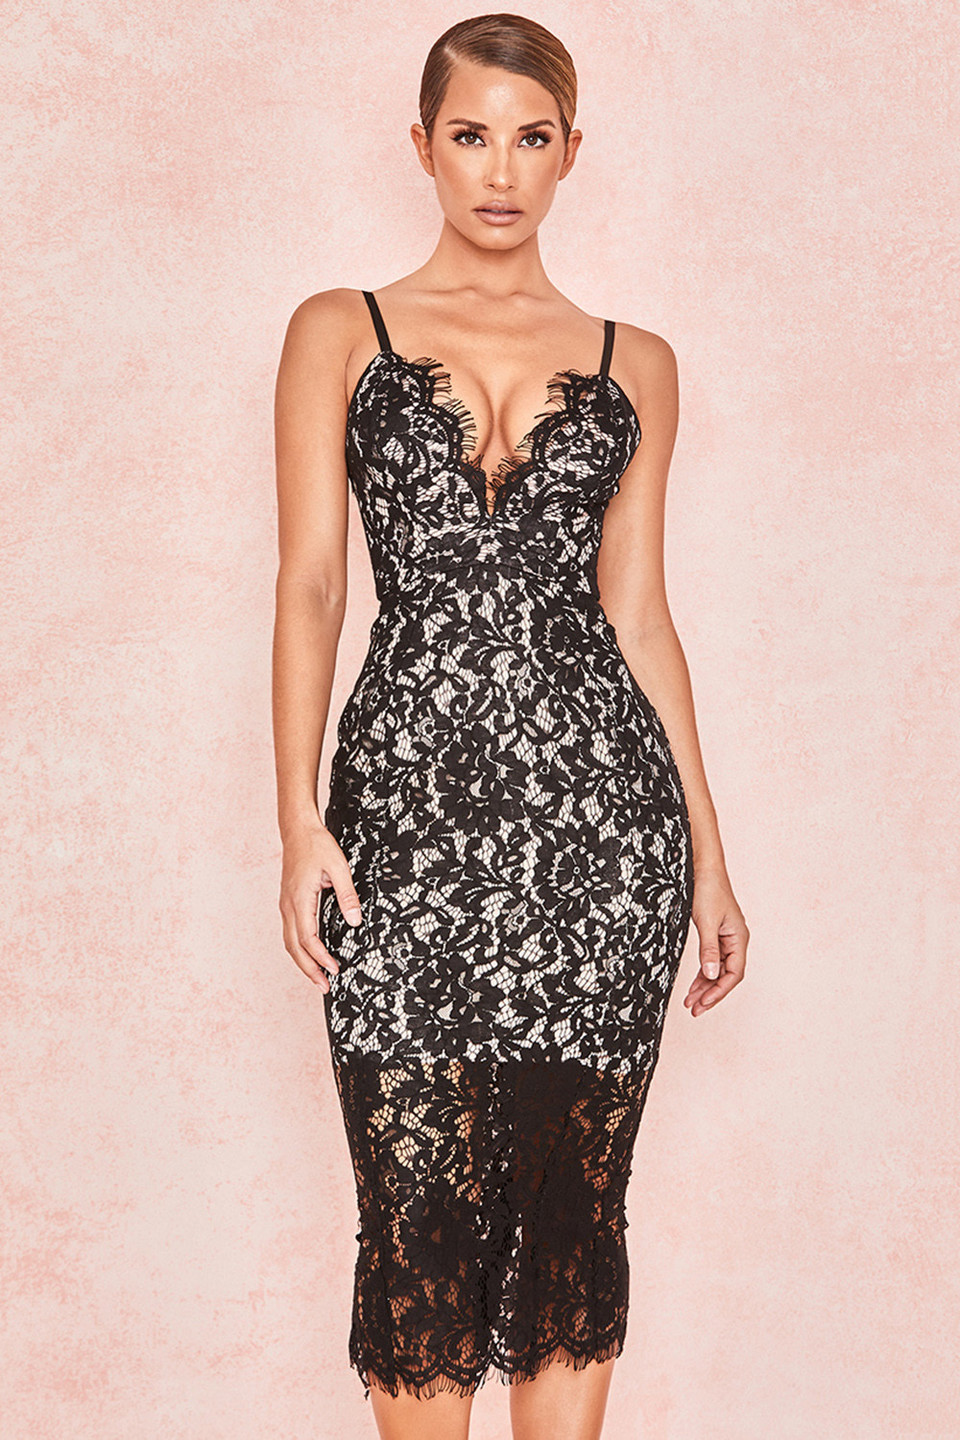 Edeta Black Lace Plunge Dress